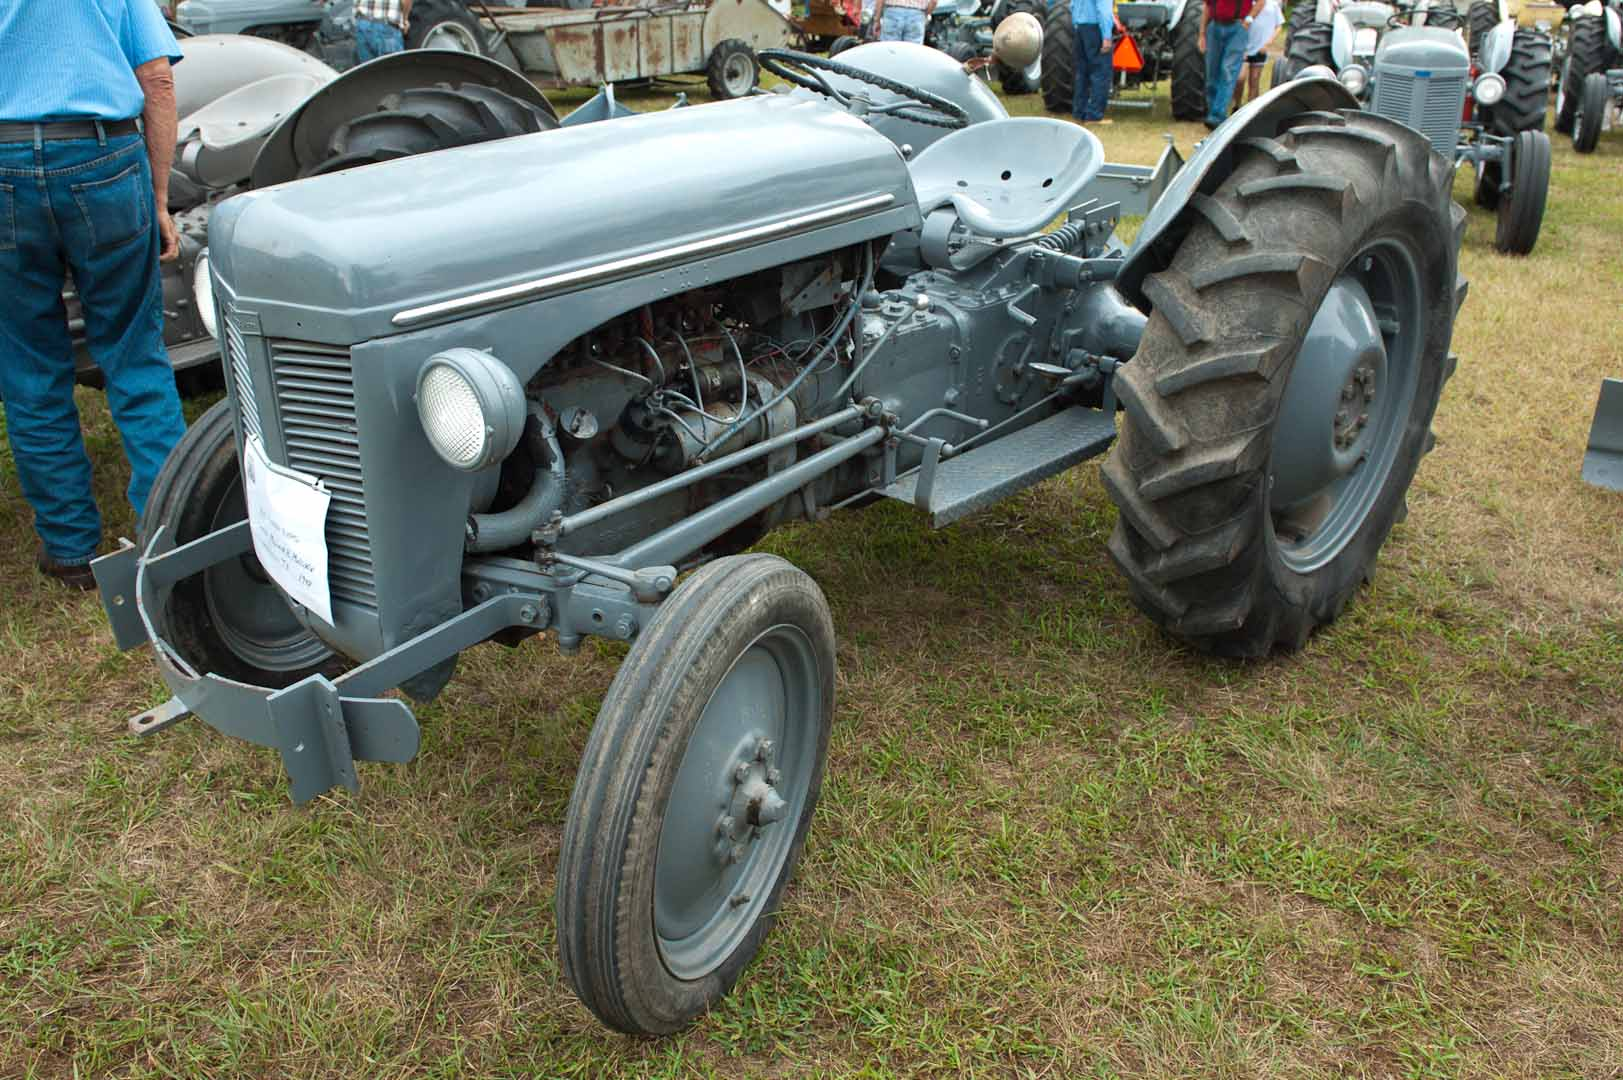 1948 TE-20 owned by Melvin Mullikin of Packwood, IA. SN TE-30043.